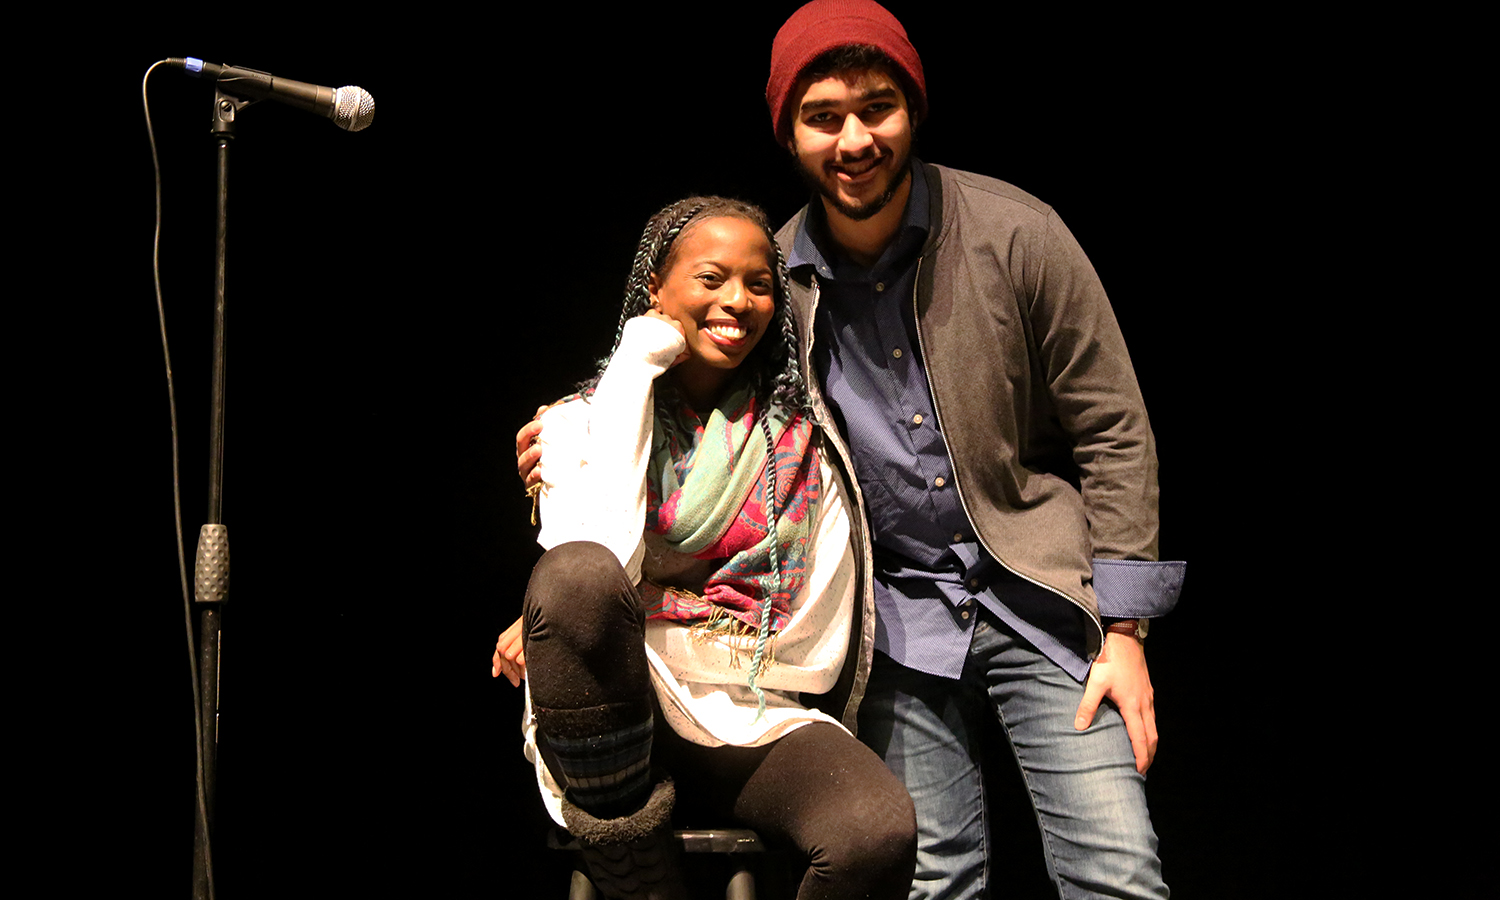 Comedian Maggie May and Arsalan Haider '18 pose for a photo on stage in the Bartlett Theatre.